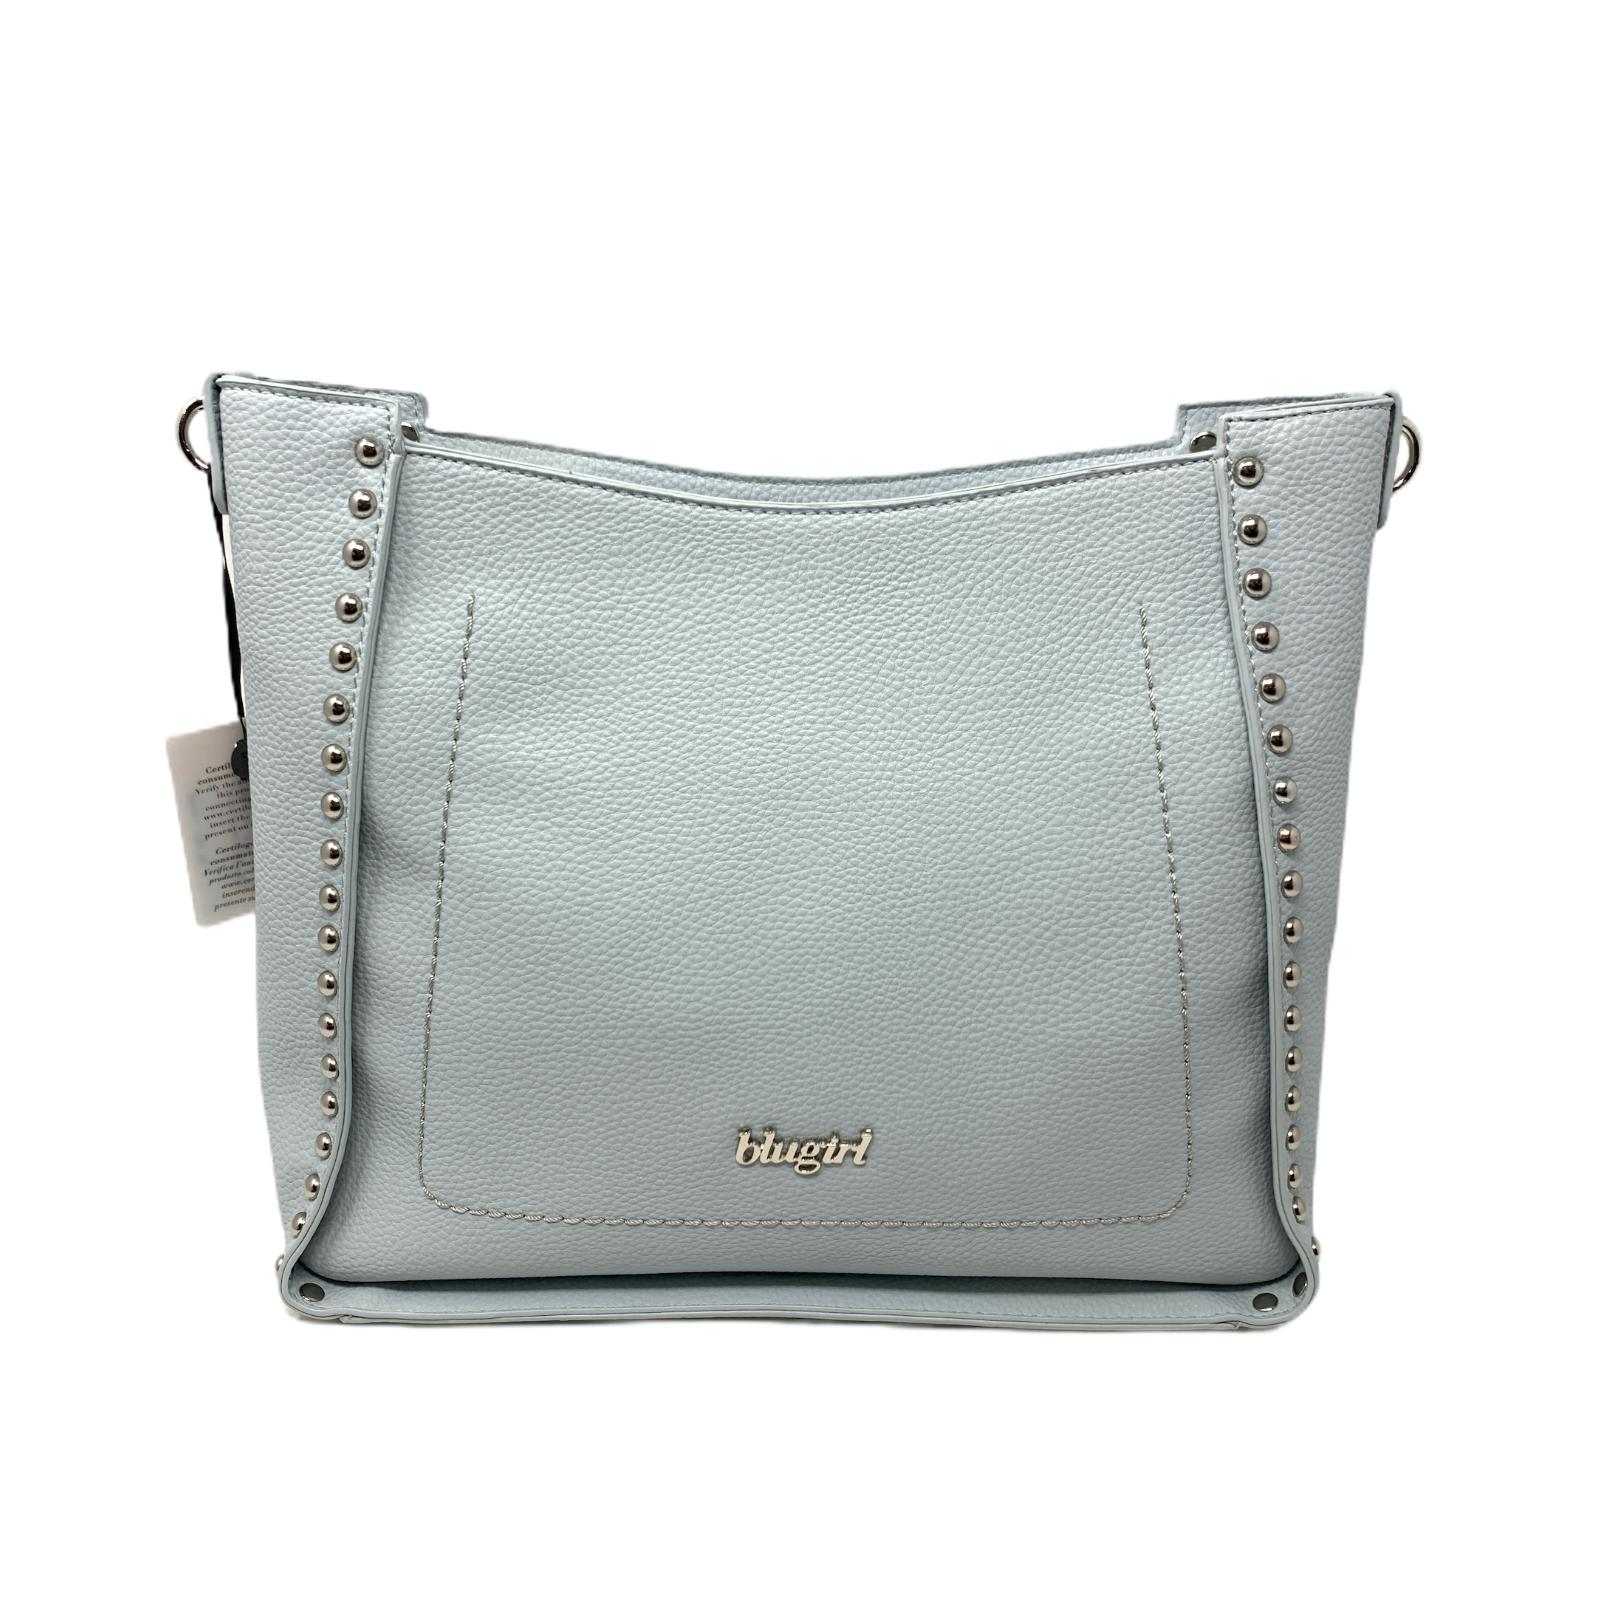 Blugirl Borsa BluMarine Bag Shopper